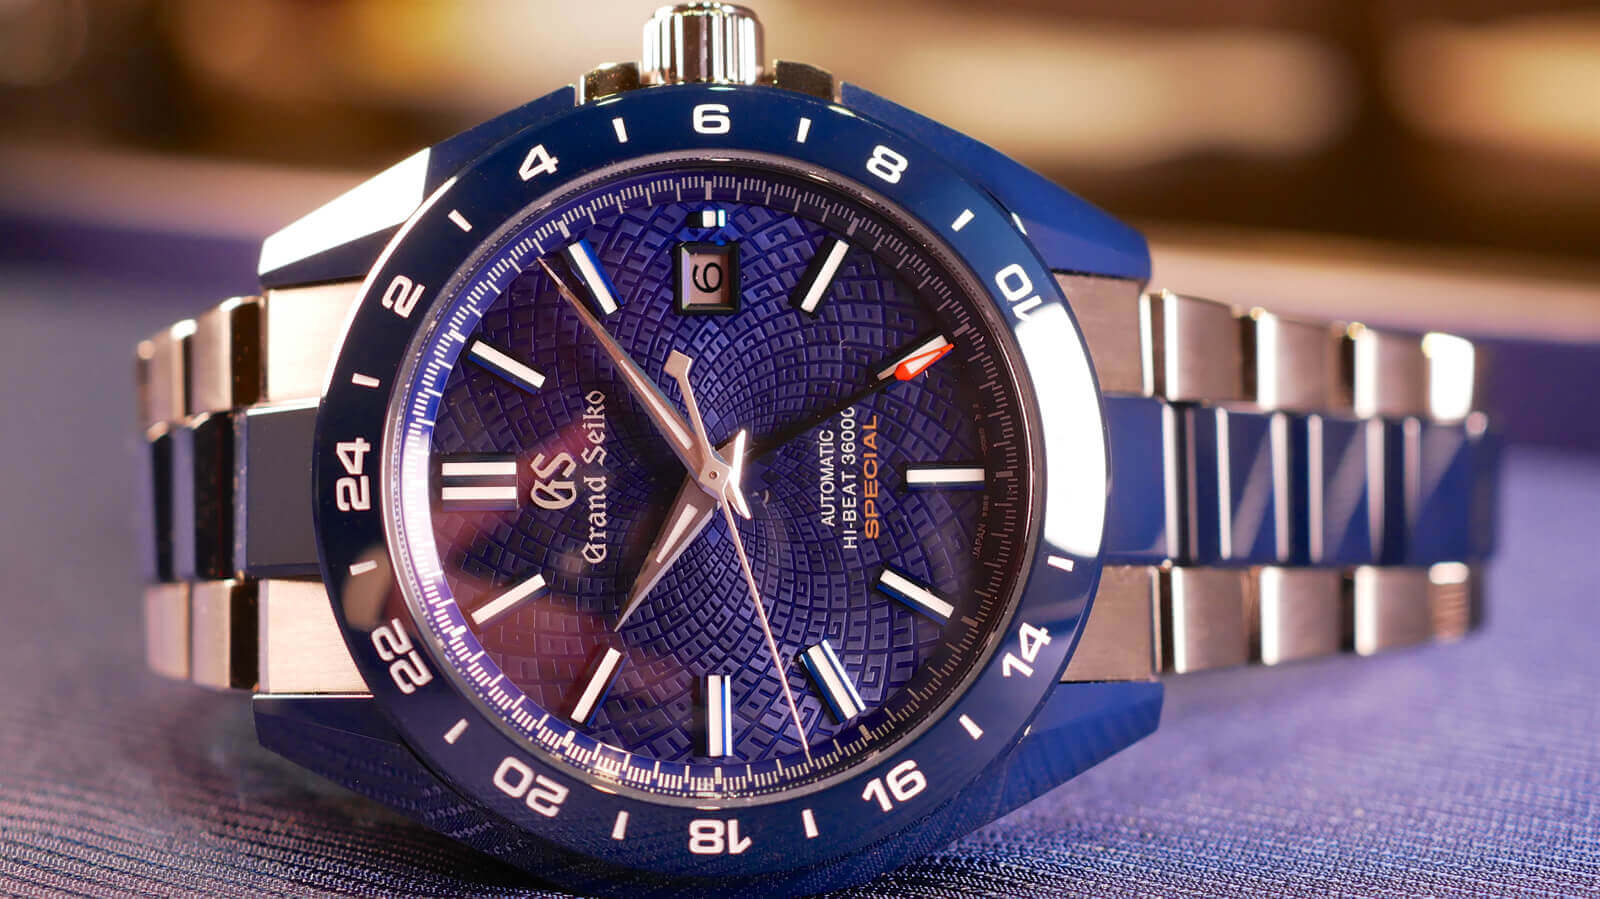 Grand Seiko Blue Ceramic Hi-beat GMT Special Limited Edition